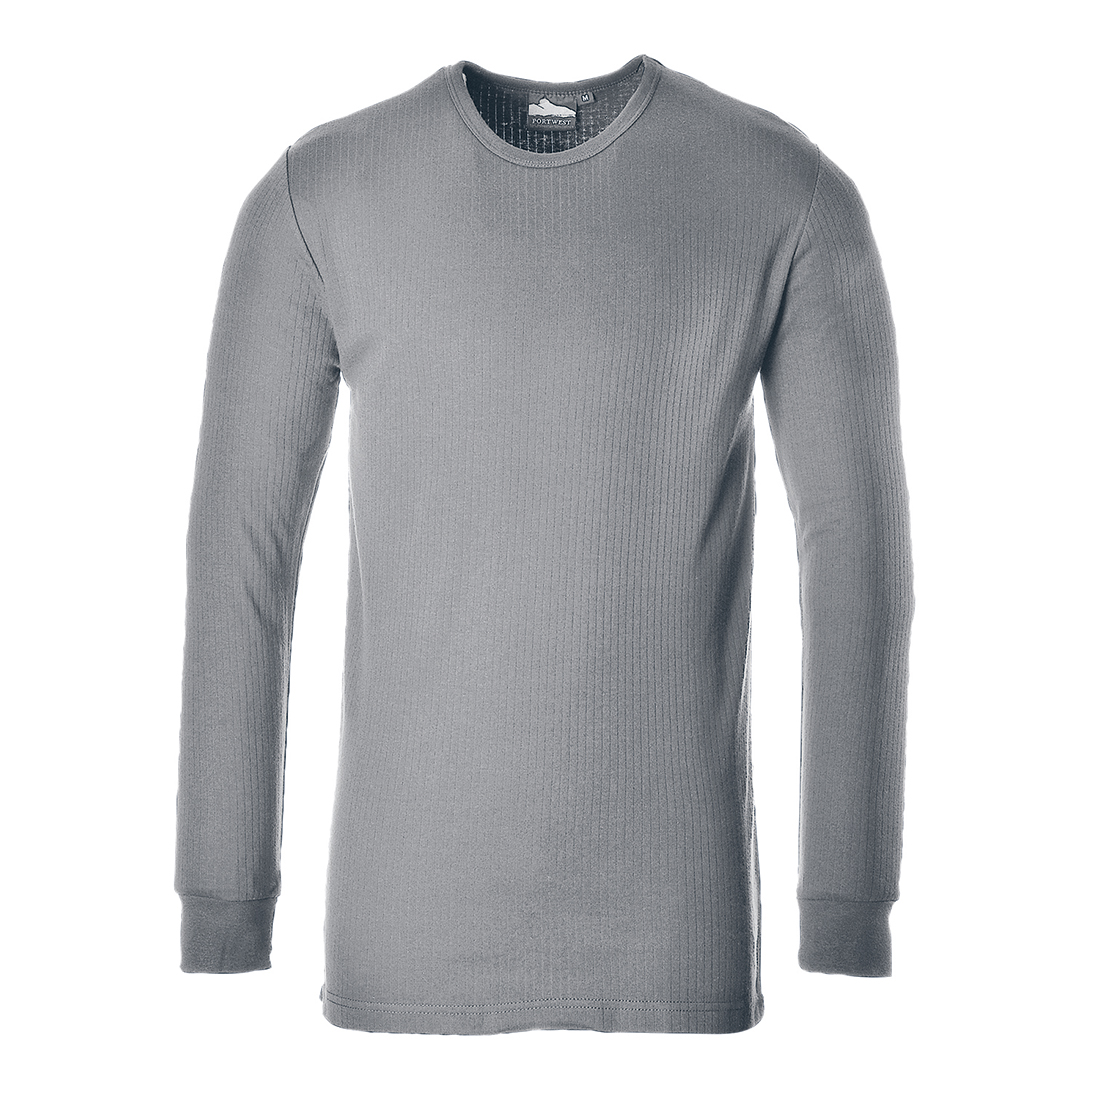 Thermal T-Shirt Long Sleeve Grey Small